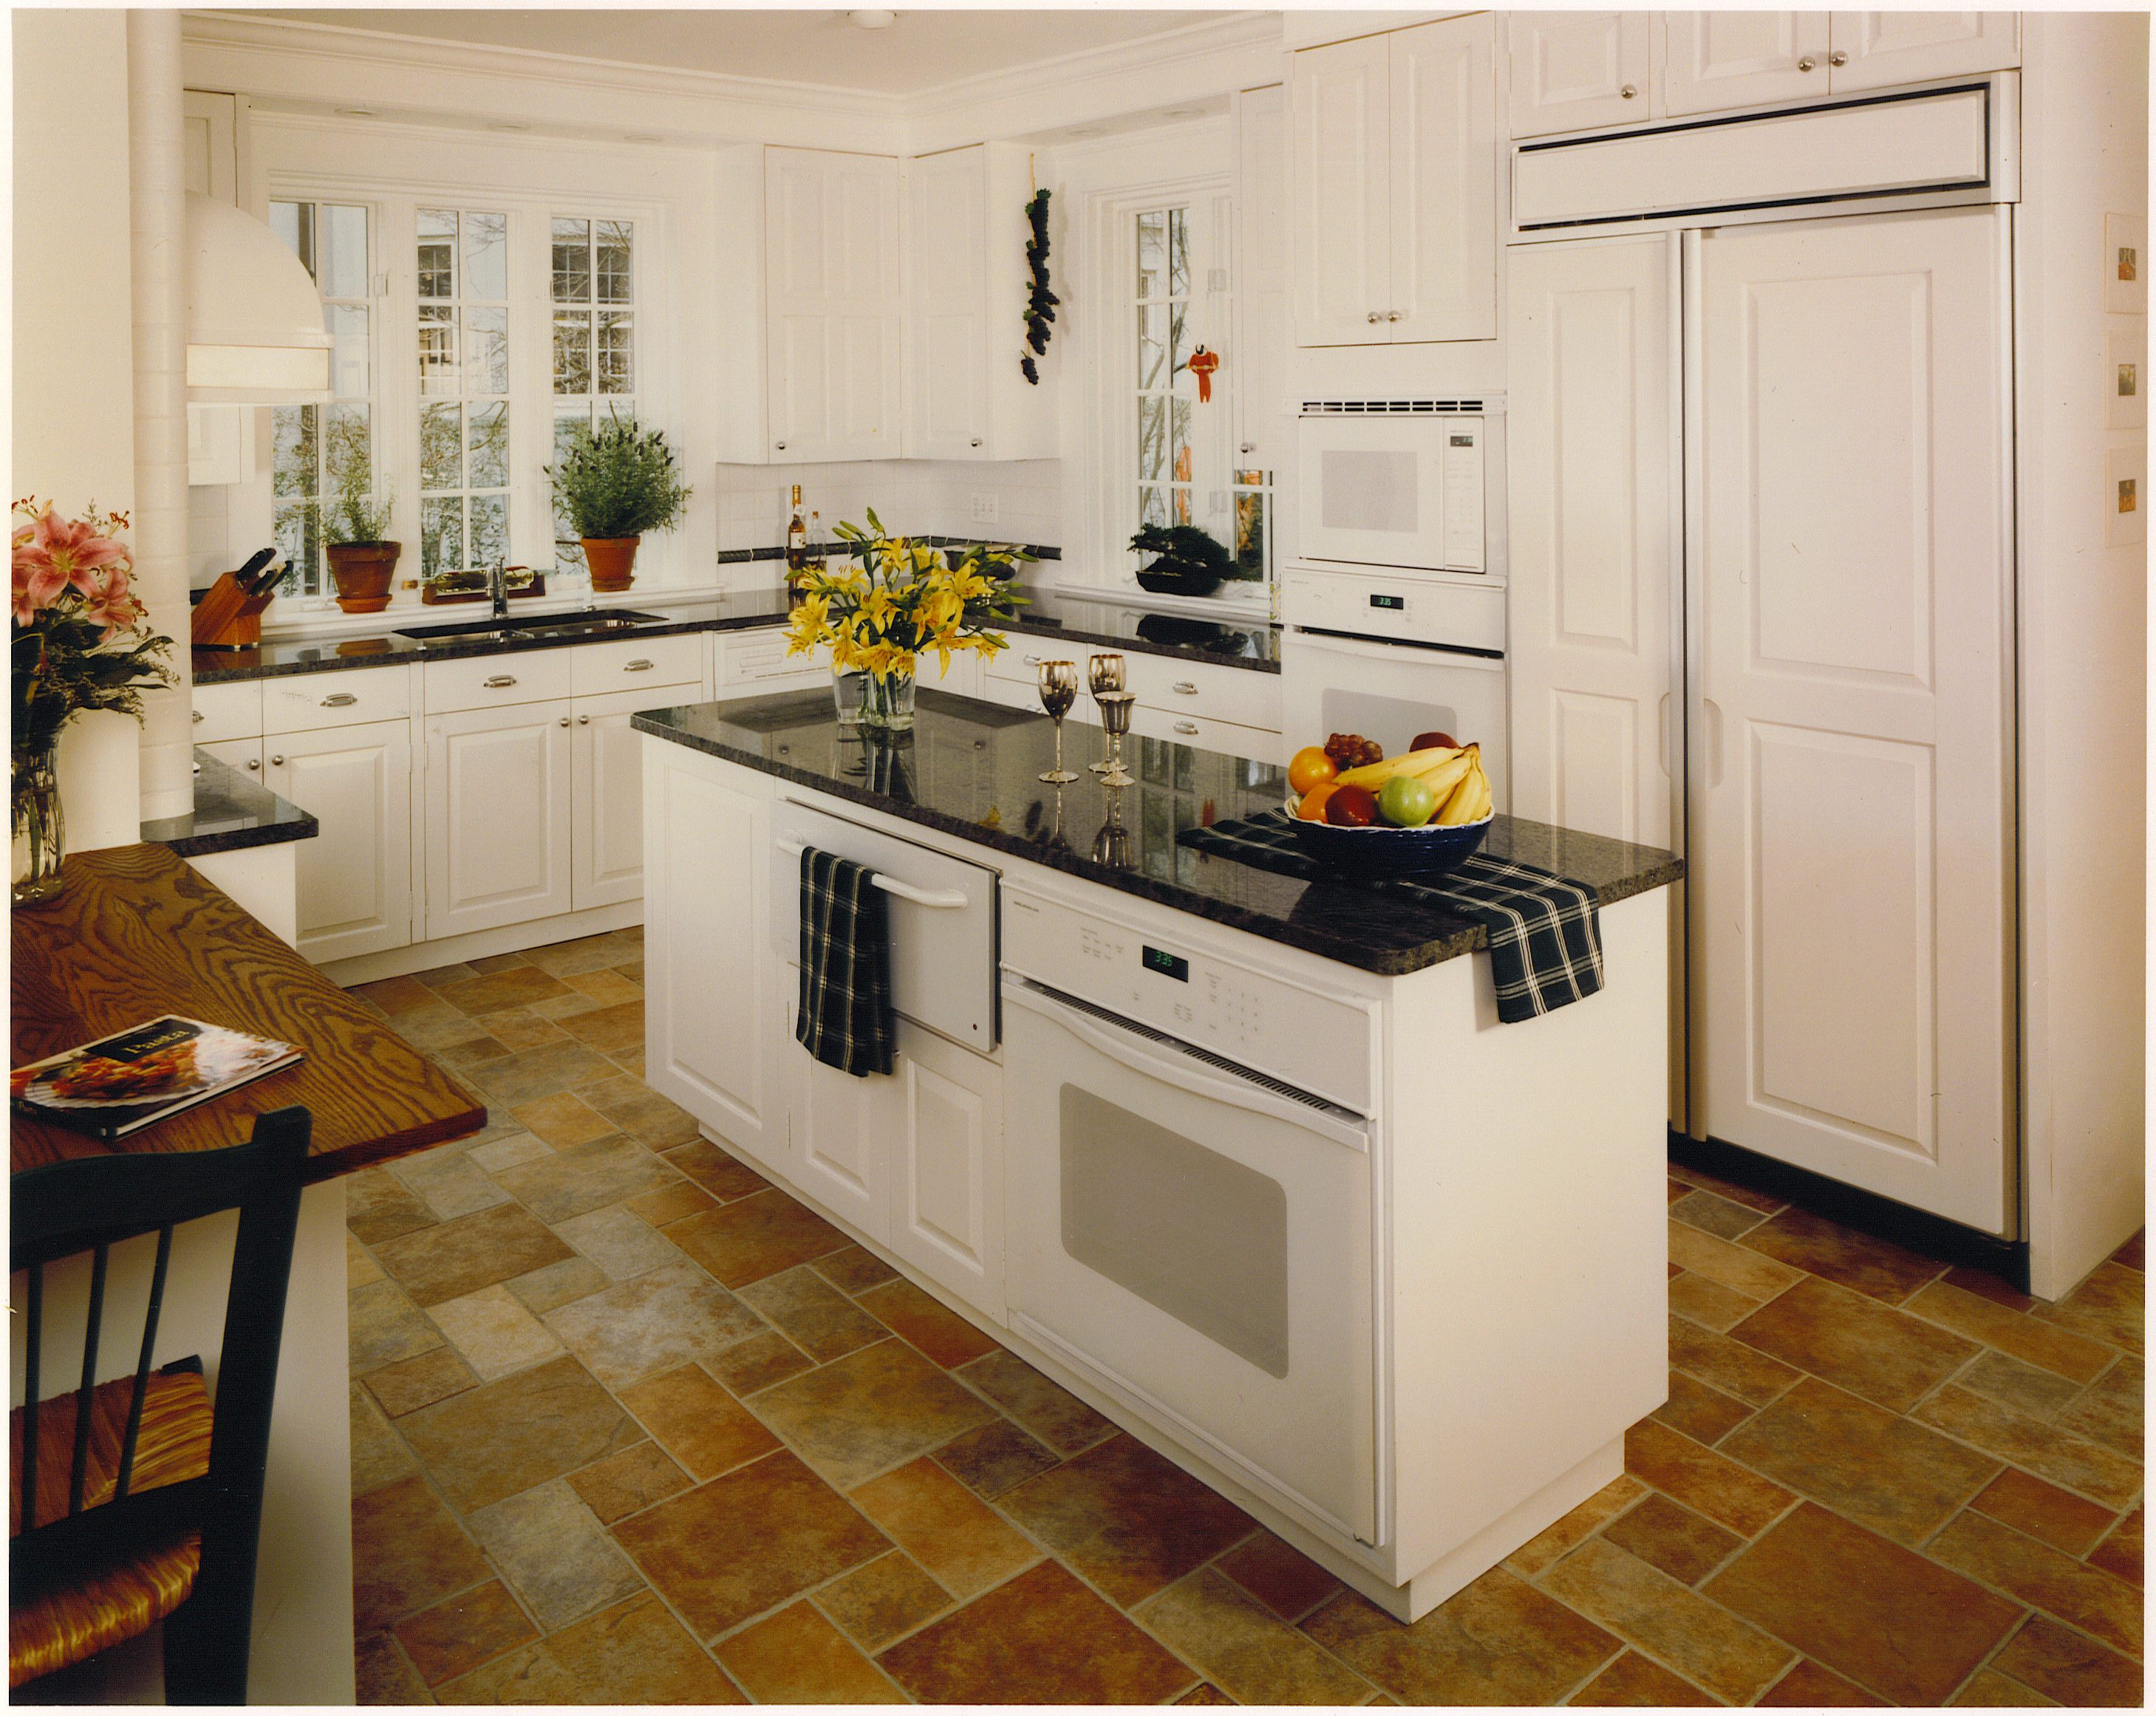 custom kitchen remodels bucks county PA - Traditional Raised Panel Kitchen Painted  White, inset doors